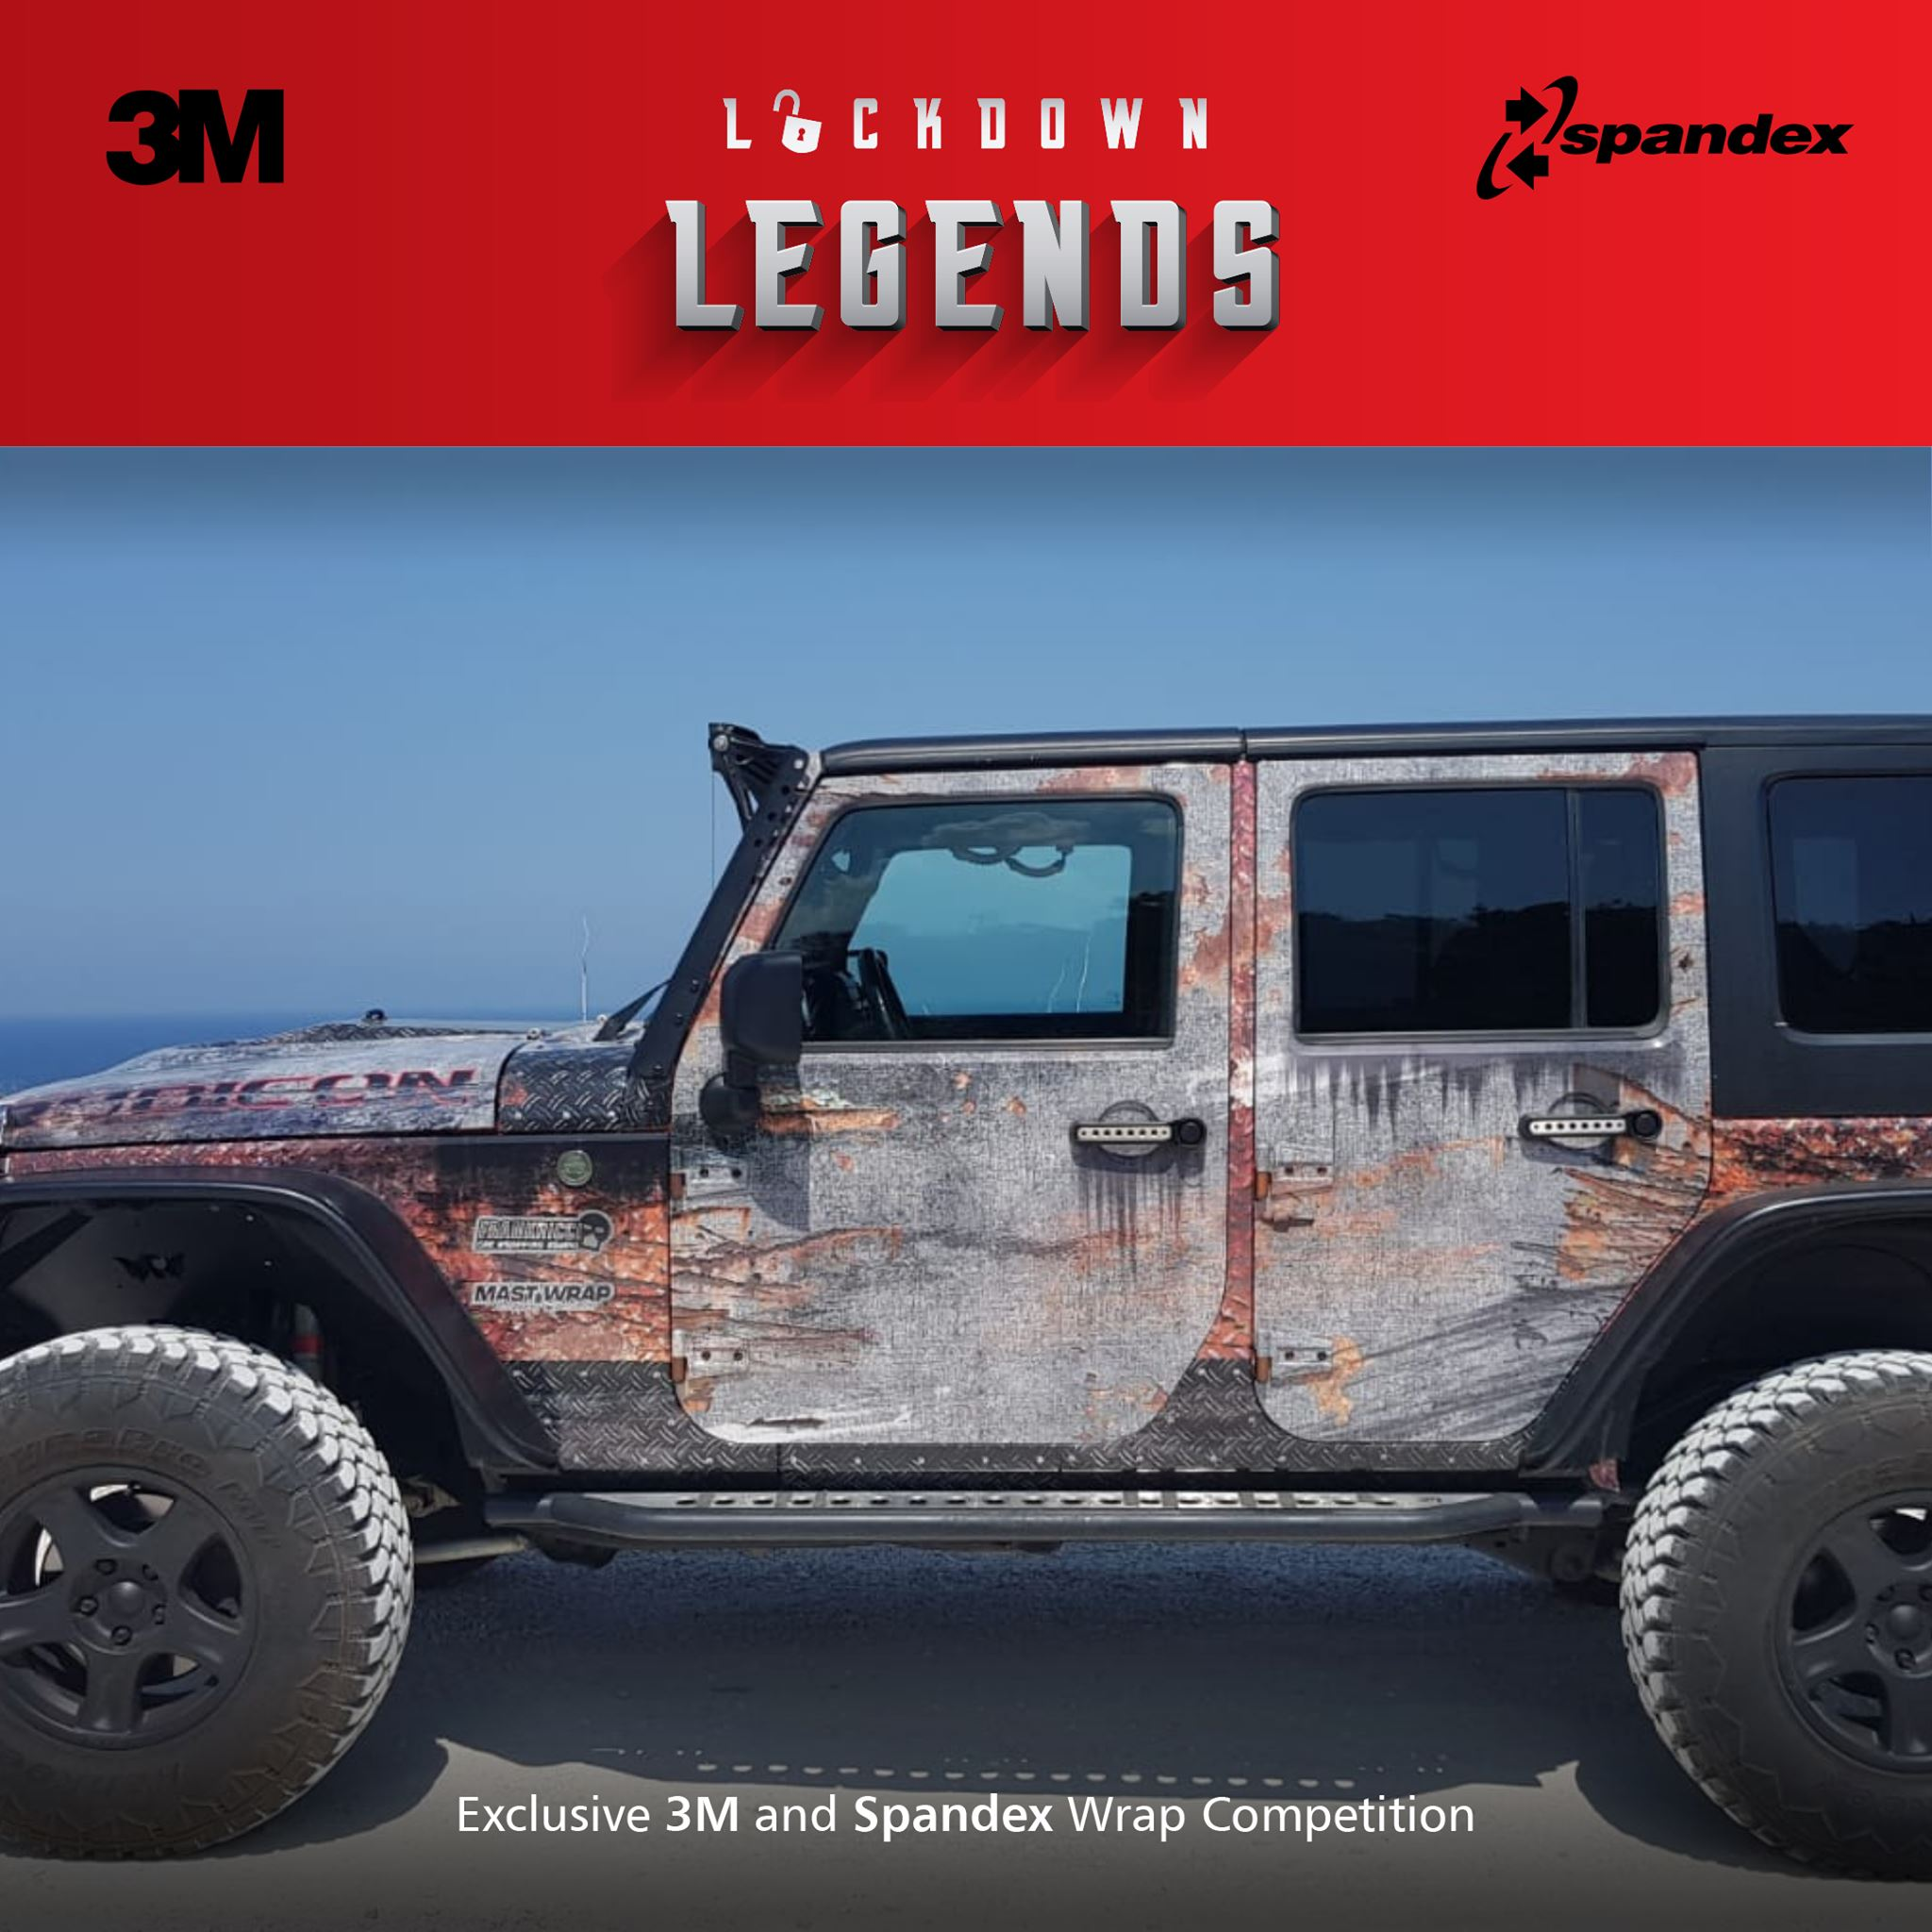 primo classificato Lockdown Legends